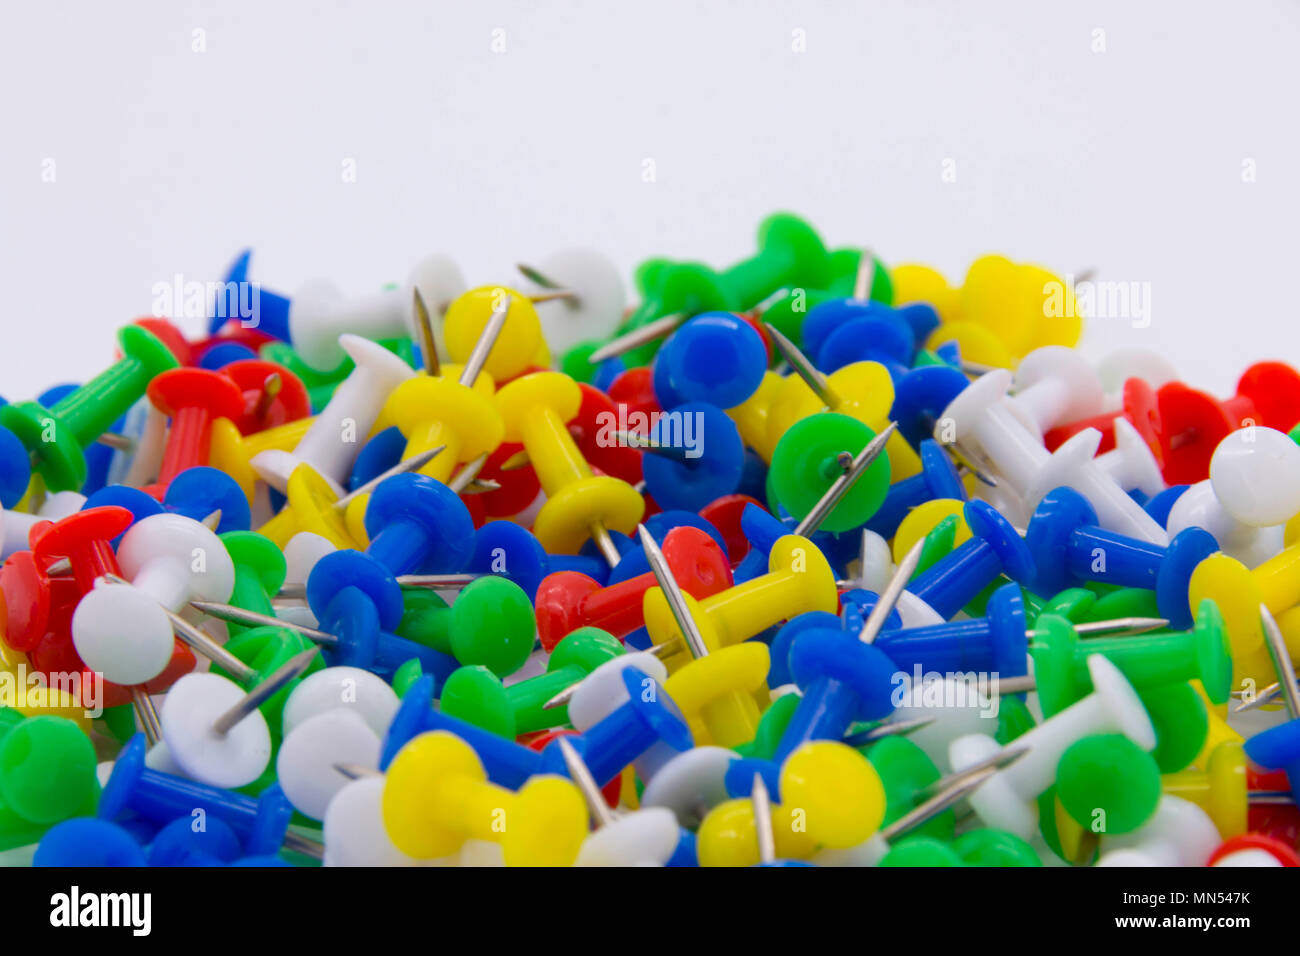 Pile of plastic notice board push pins on a white background - Stock Image